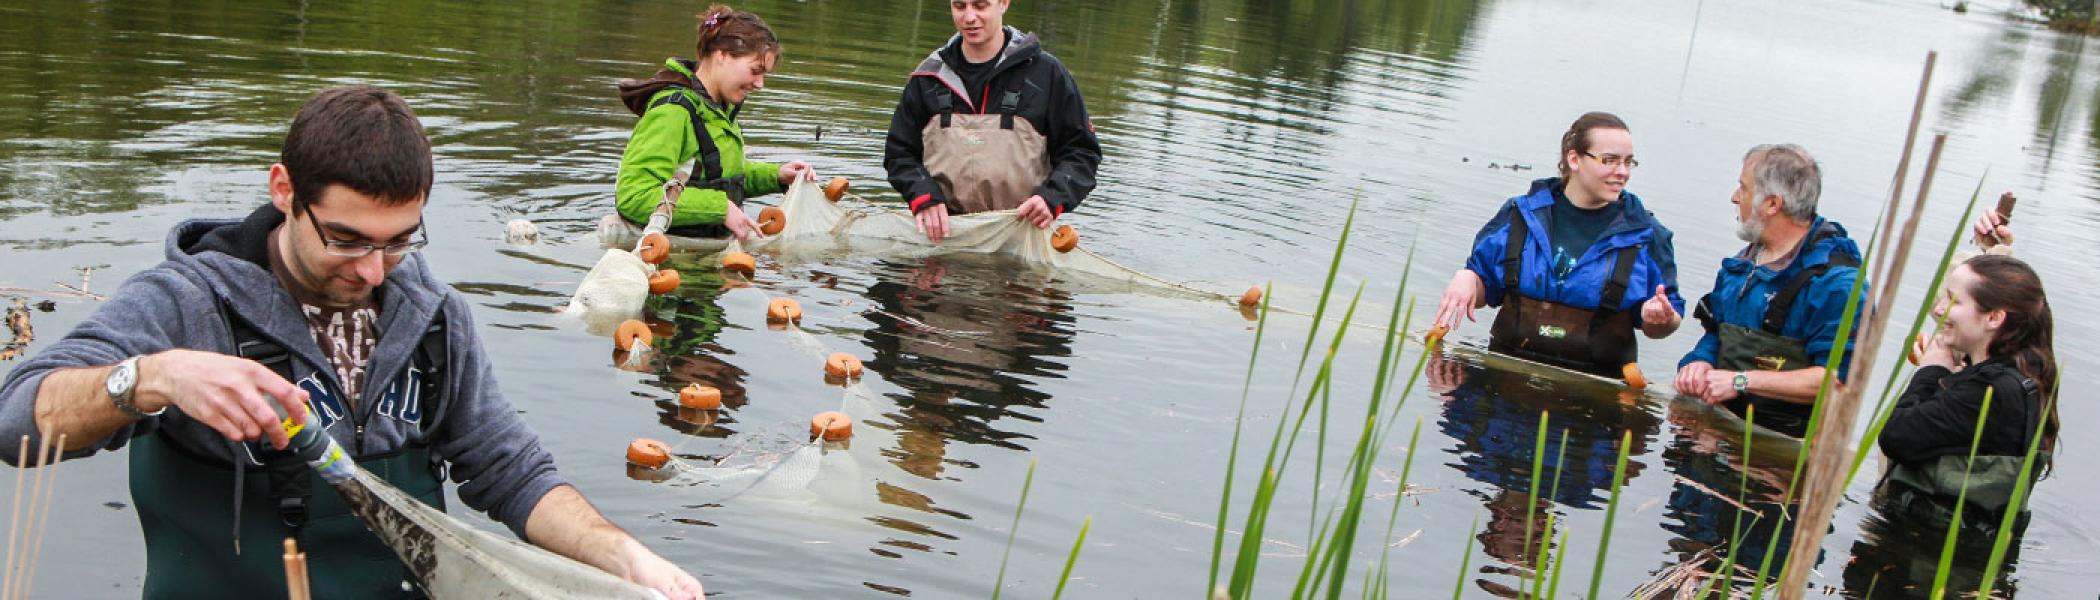 5 students standing in a river with a professor gathering water samples from nets